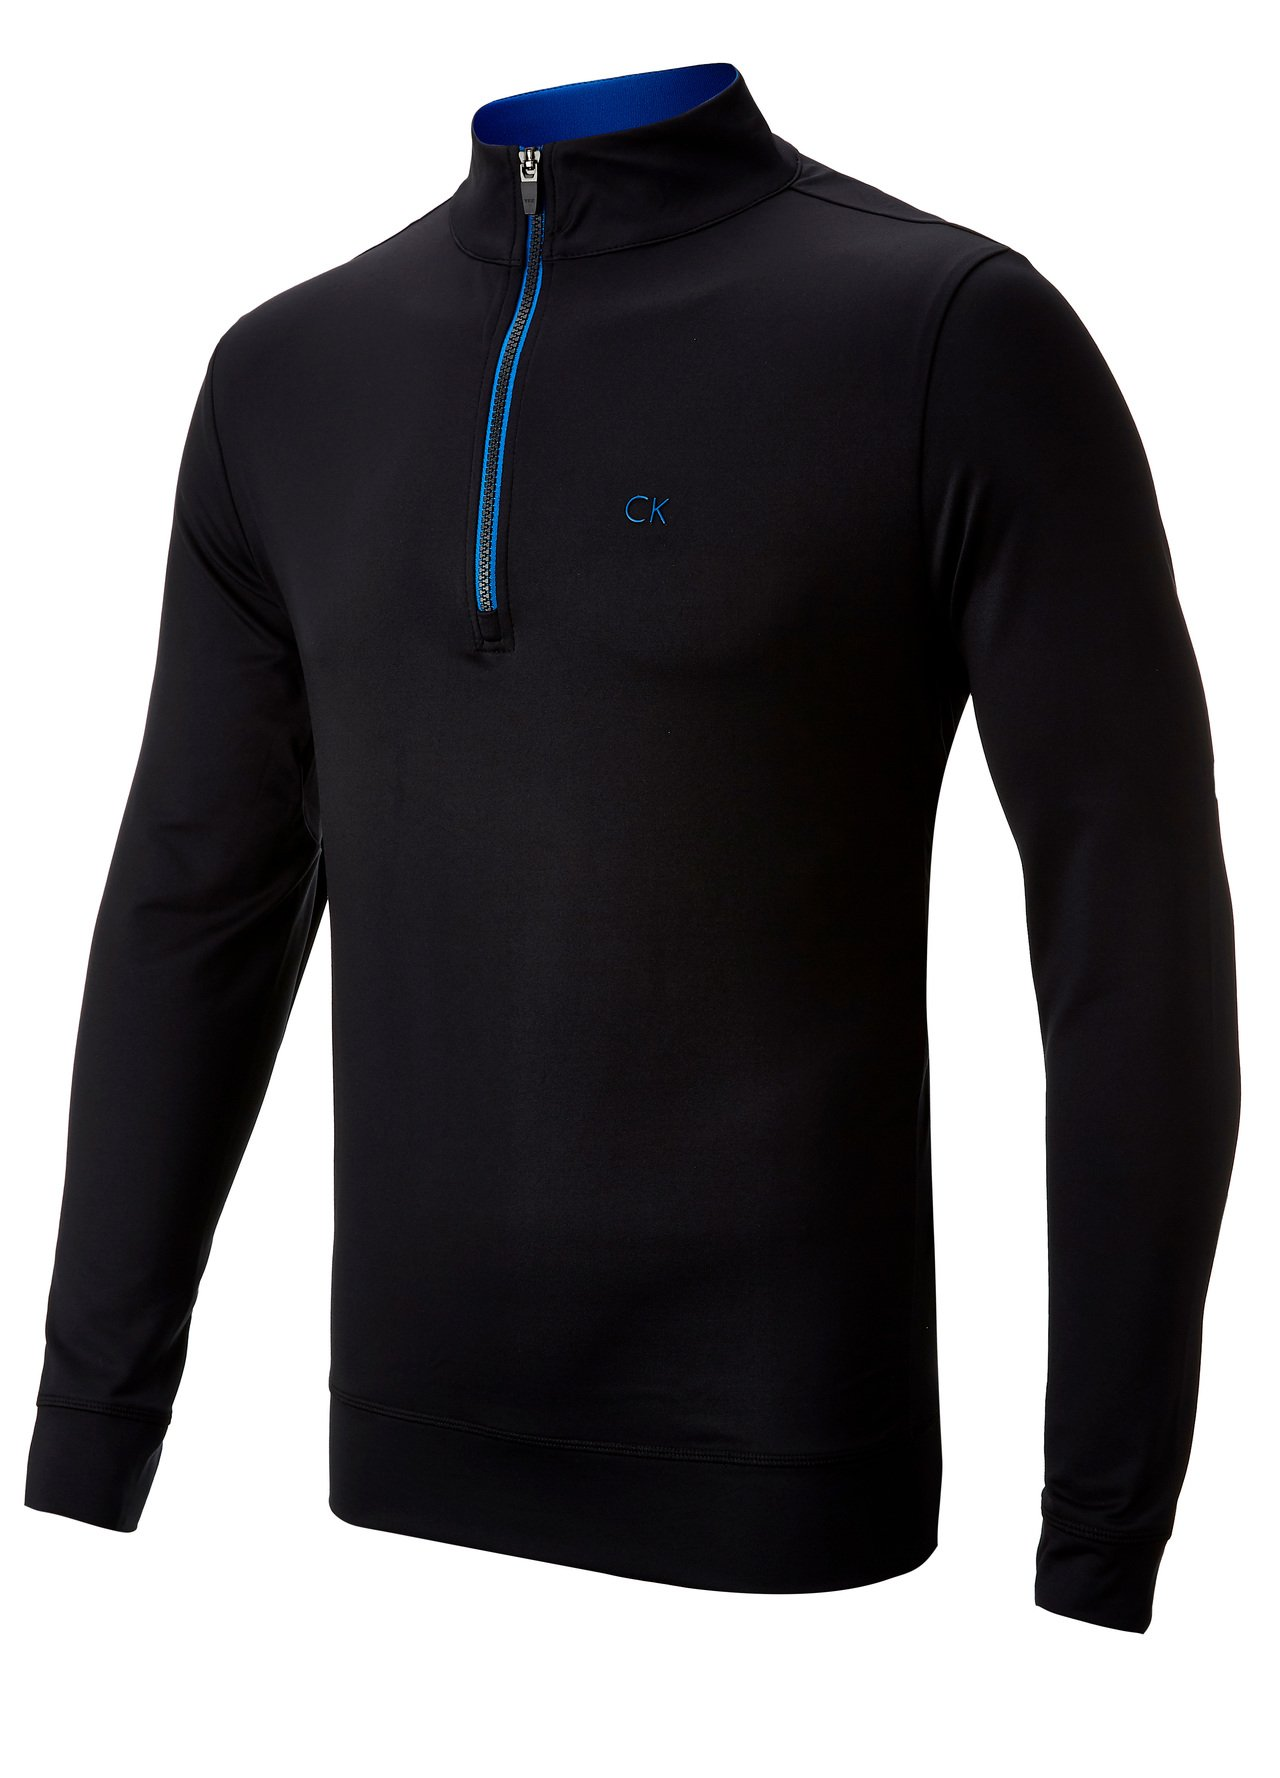 calvin klein px4 performance golf pullover black blue medium ebay. Black Bedroom Furniture Sets. Home Design Ideas